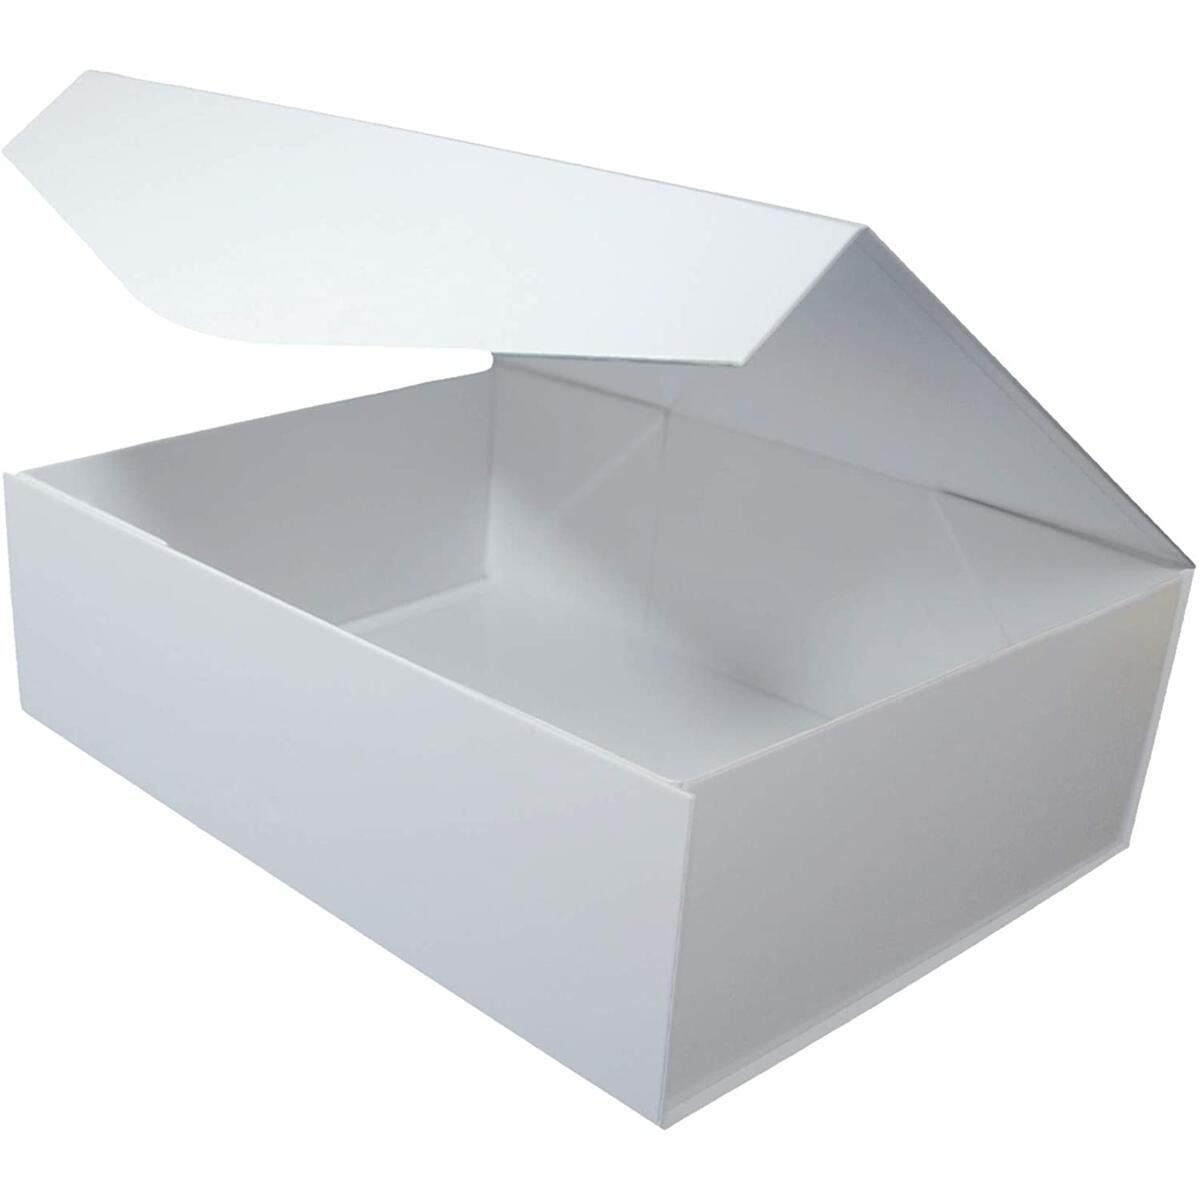 Large White Gift Boxes. Bridesmaid Proposal Birthday Valentines Day Wedding. Sturdy Gift Box with Extra Strong Magnetic Closure Lid. Internal Size 12.5